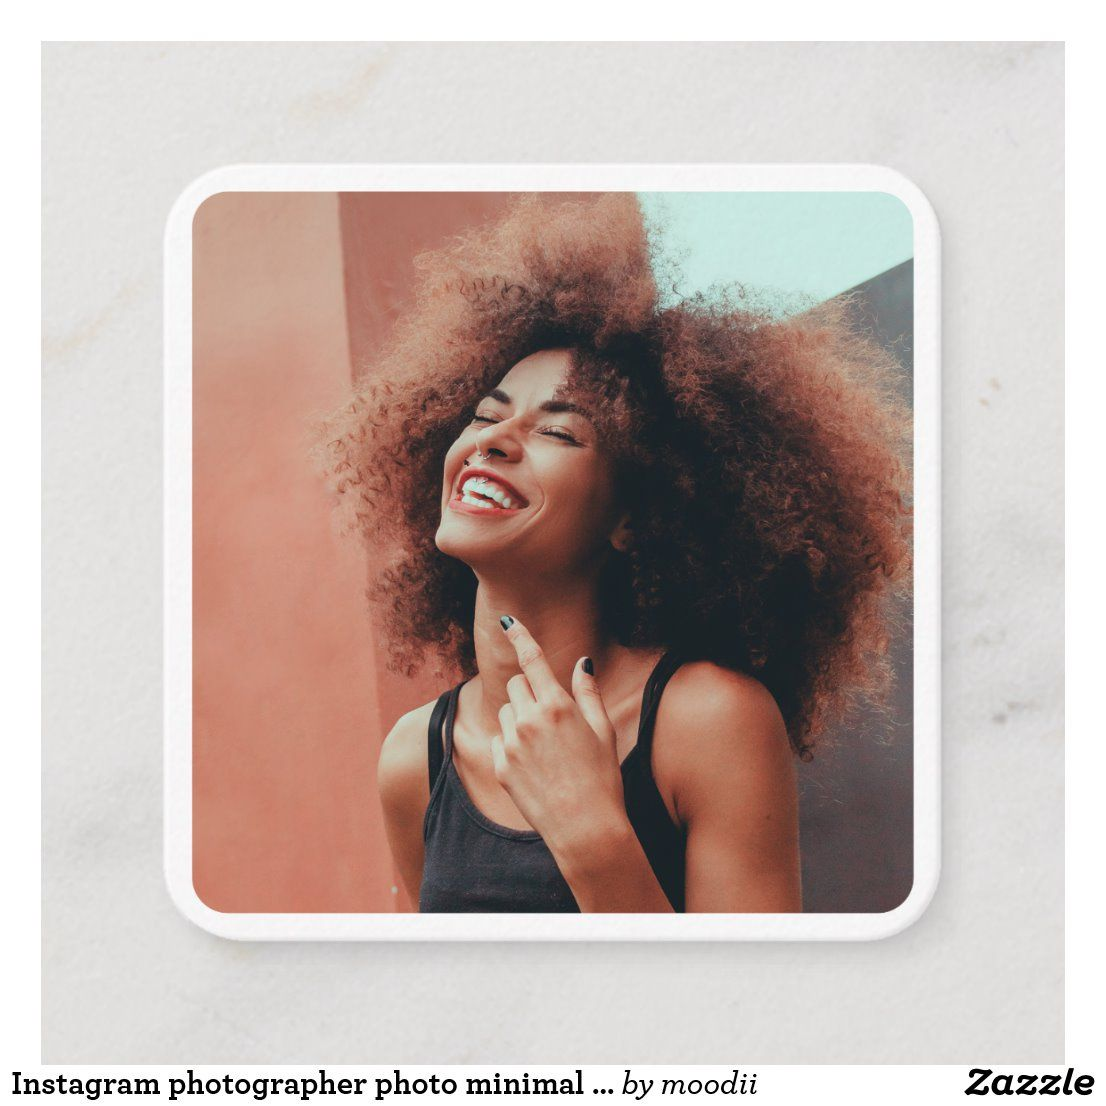 Instagram photographer photo minimal photography calling card | Zazzle.com